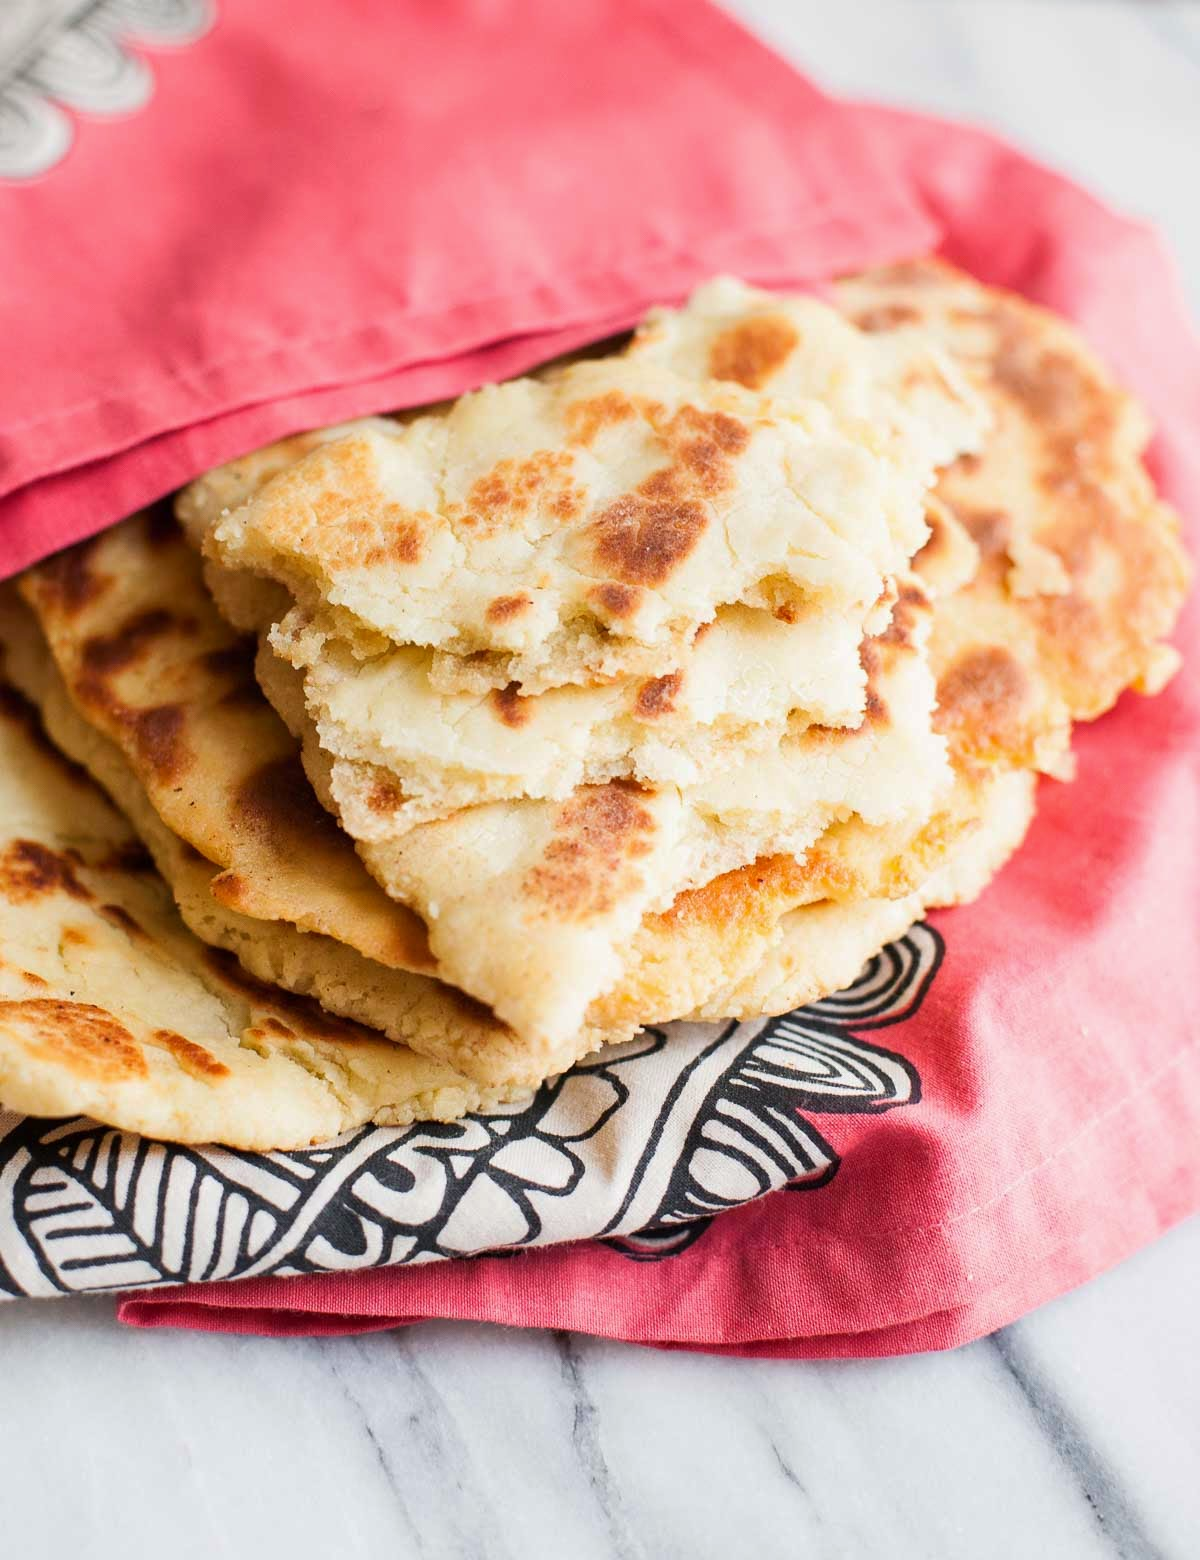 70 Grain-free Vegetarian Recipes: Paleo Flatbread